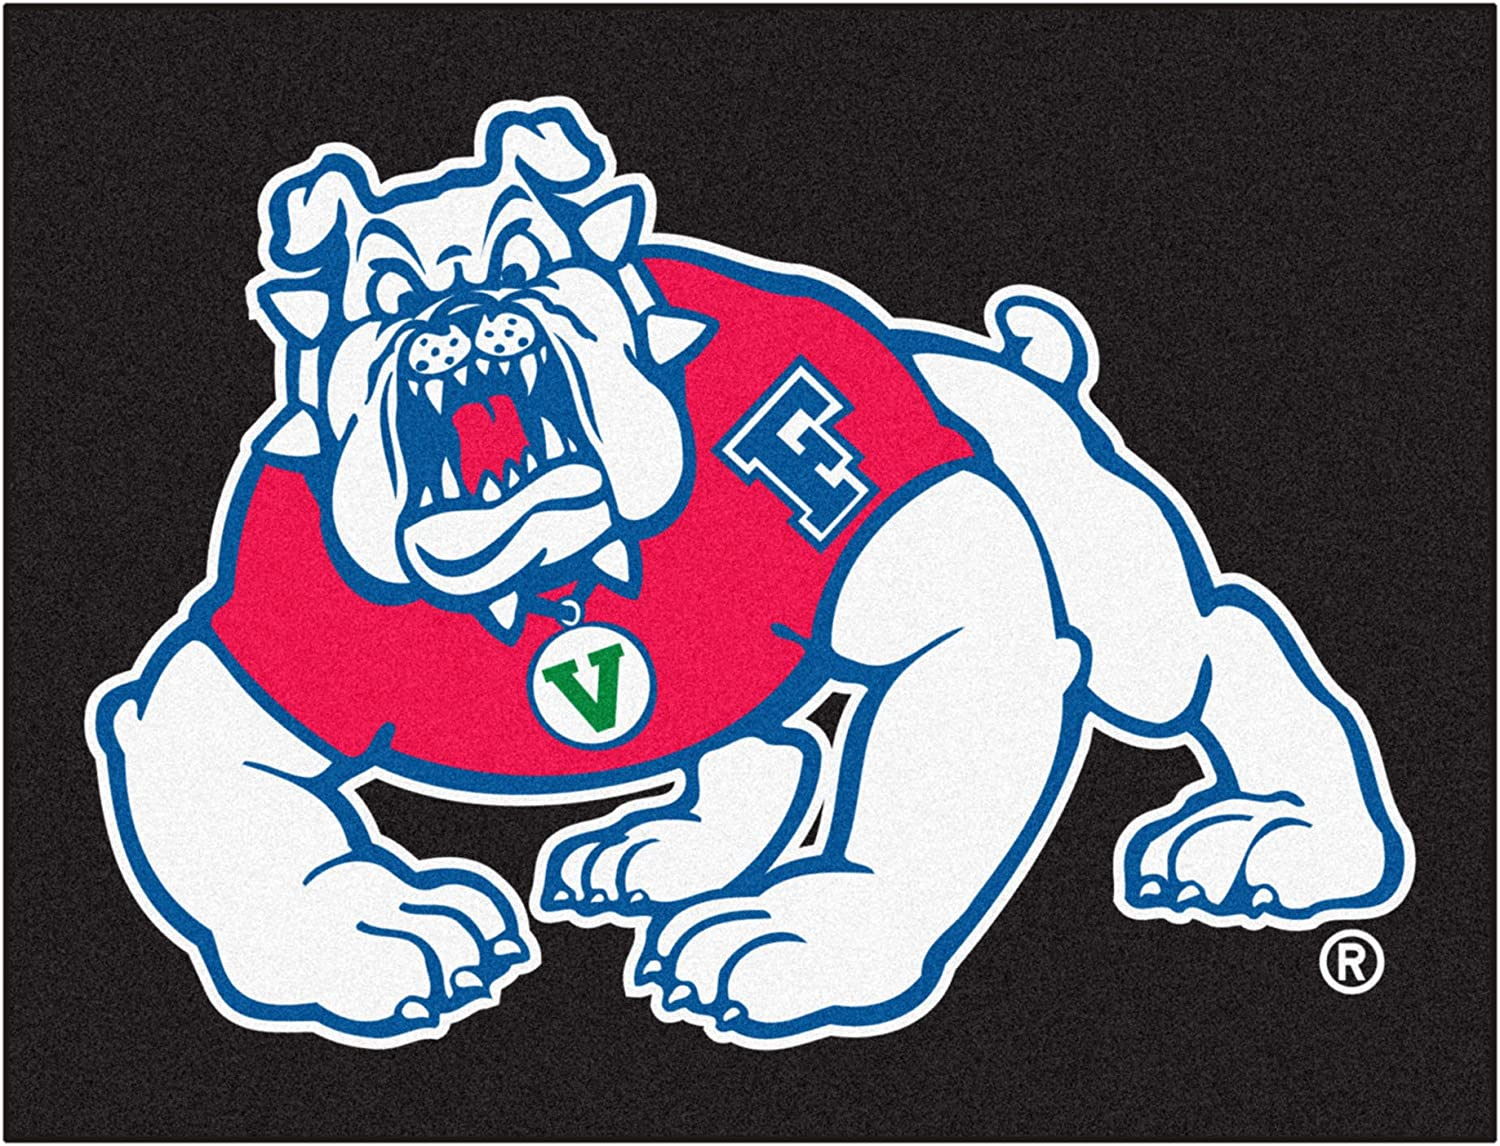 Black Team Color Fresno State All-Star Mat FANMATS 19282 33.75x42.5